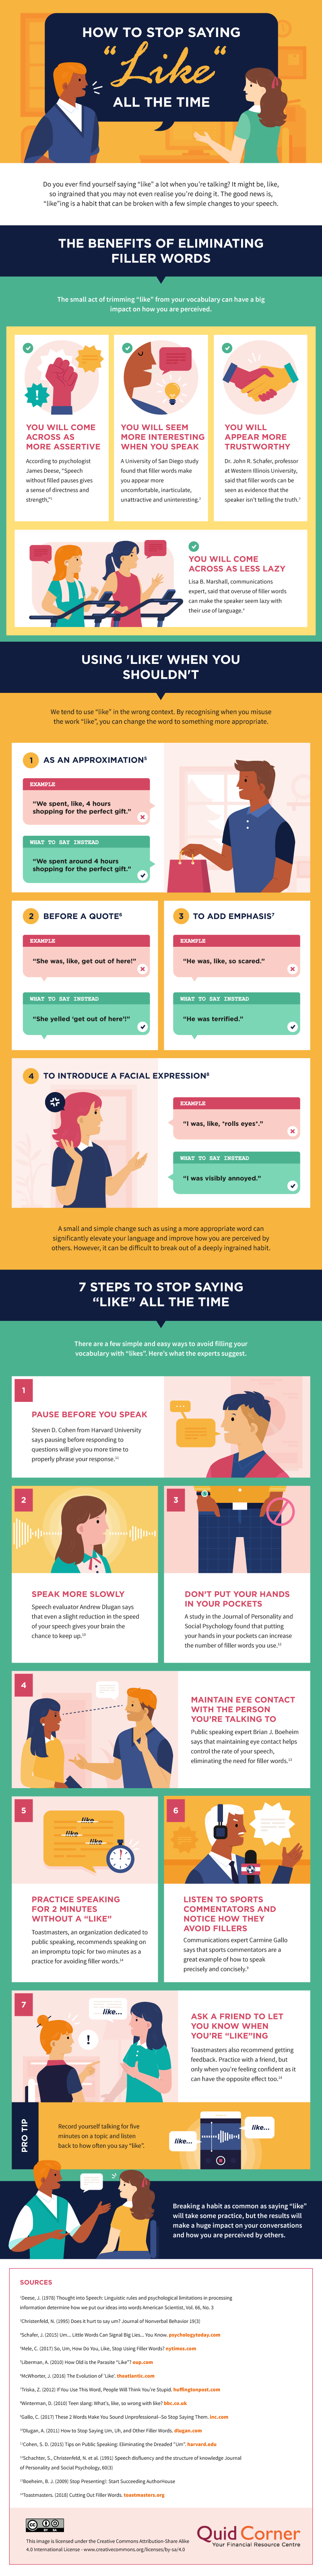 "How to Stop Saying ""Like"" All the Time"